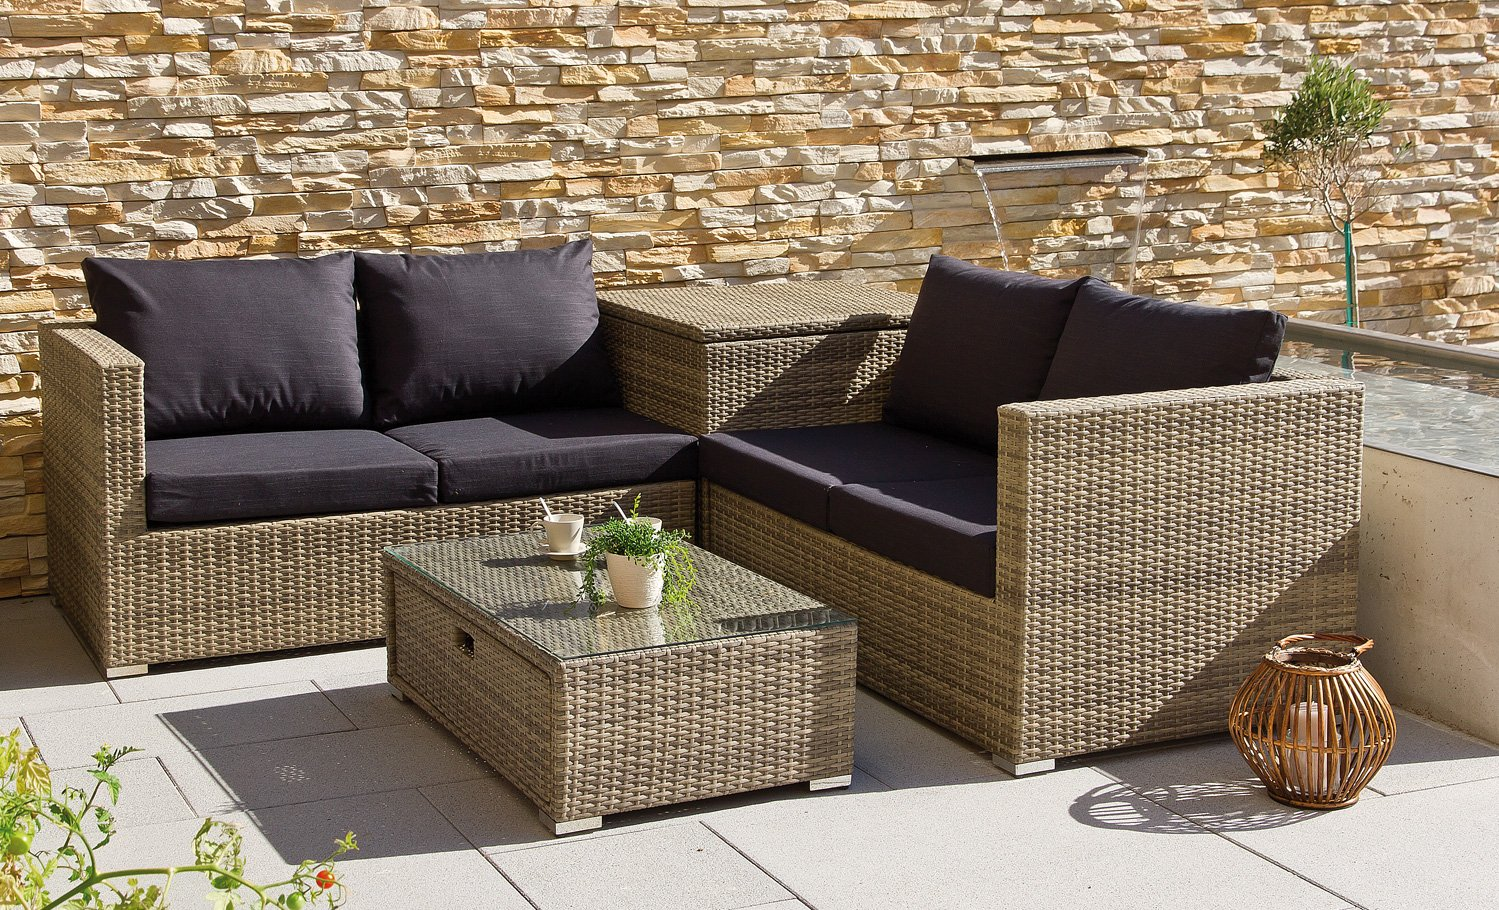 rattan lounge set kos garten sitzgarnitur mit polsterbox g nstig bestellen. Black Bedroom Furniture Sets. Home Design Ideas